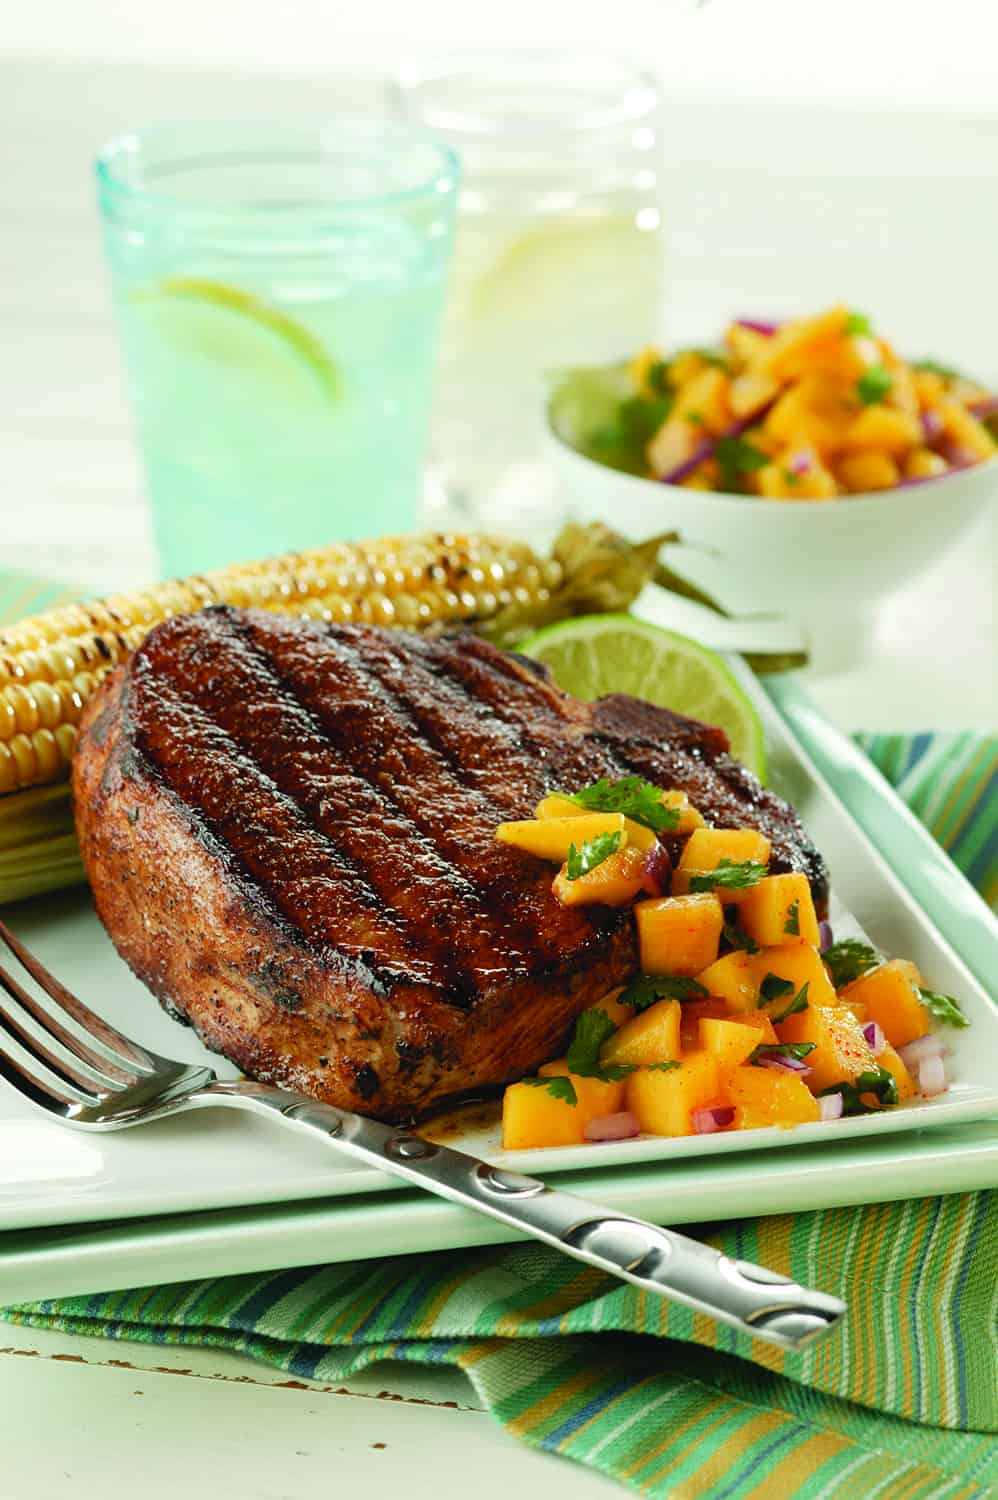 Grilled Pork Chops with Fresh Peach or Mango Salsa